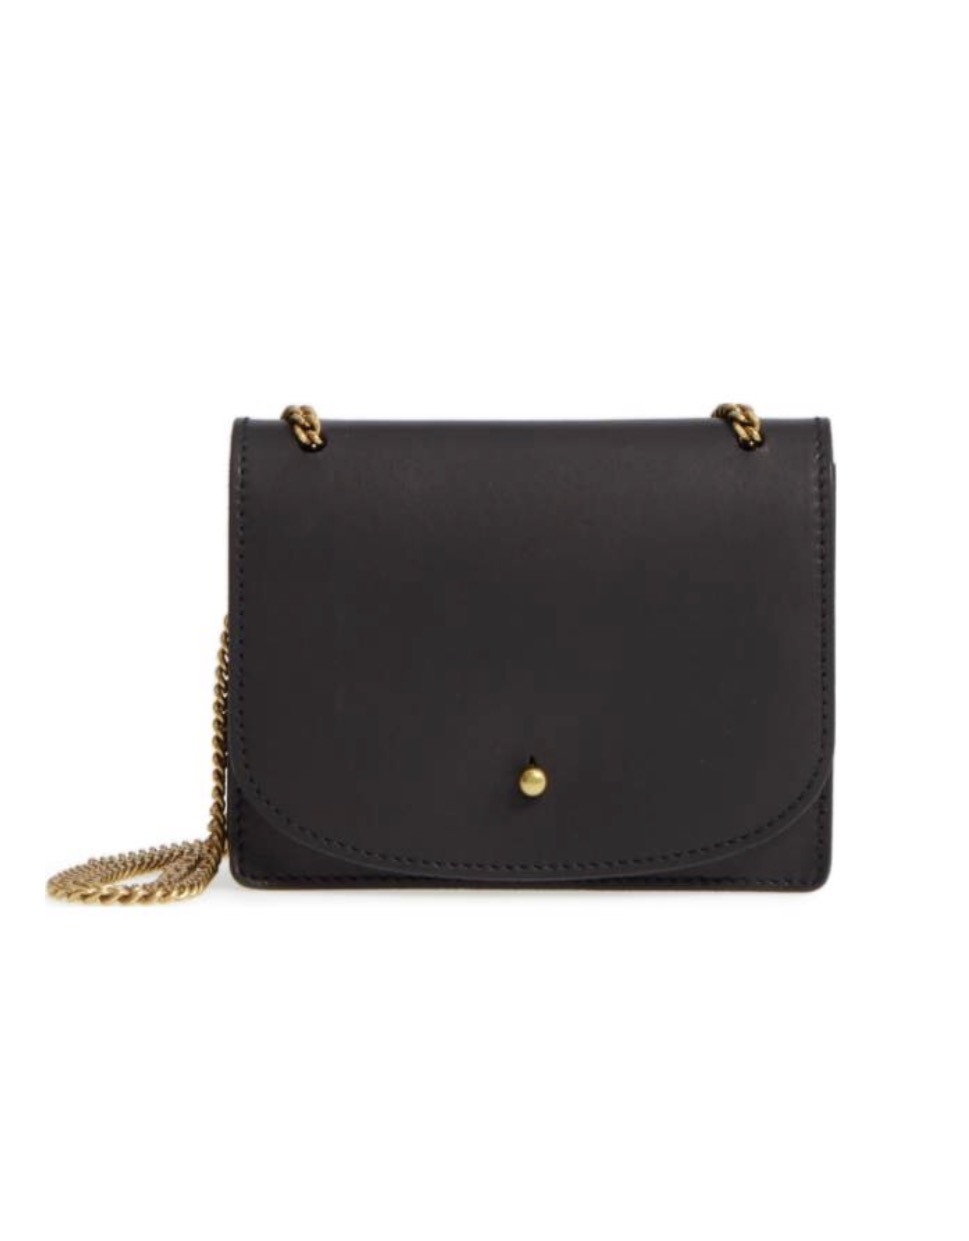 Black Cross body Bag ($88) - Click on Image to shop